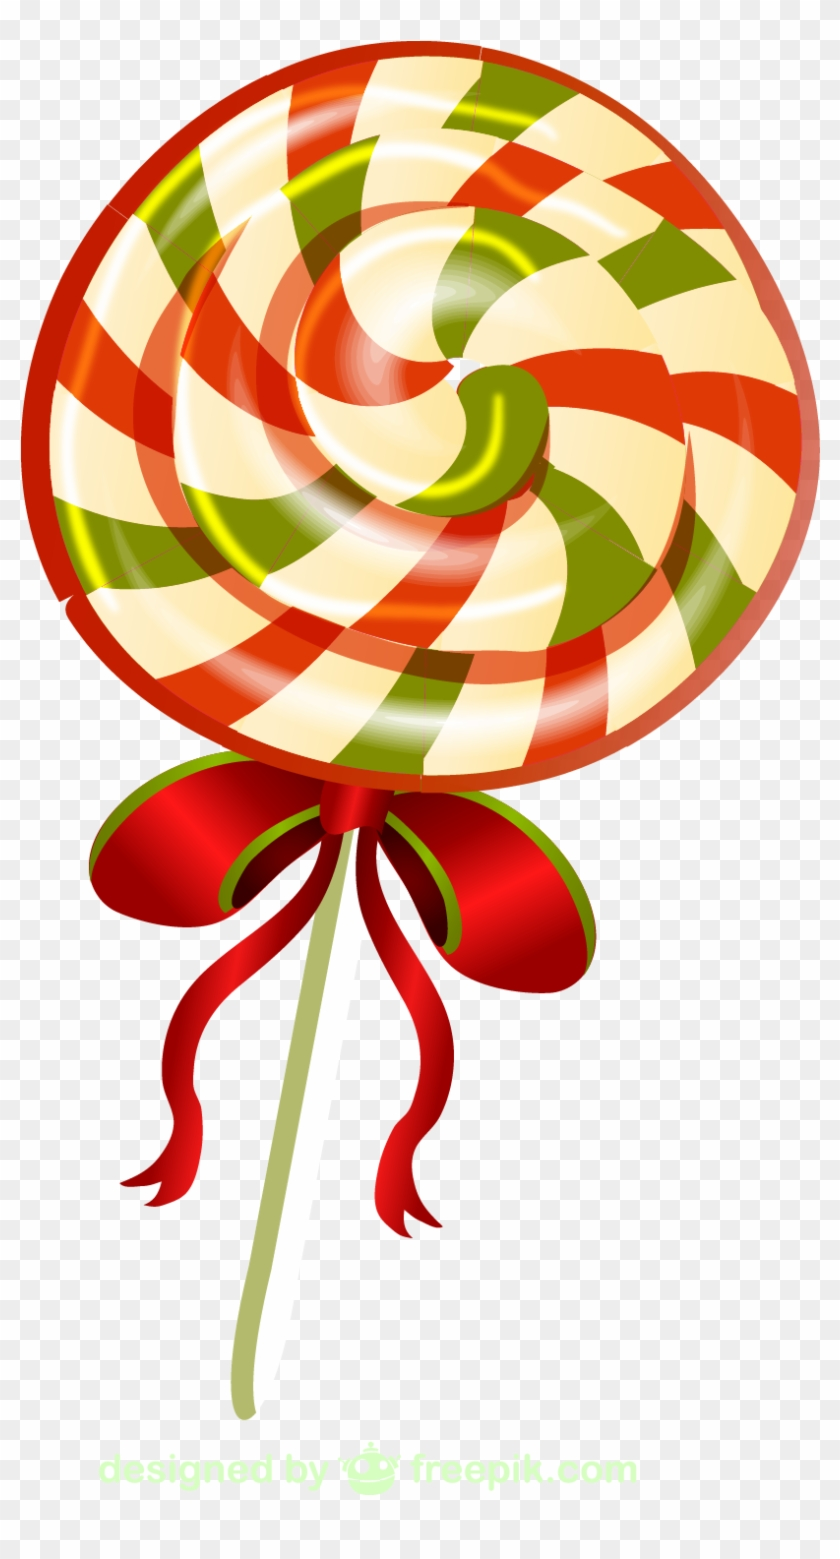 lollipop ribbon candy candy cane christmas stick candy - Christmas Ribbon Candy